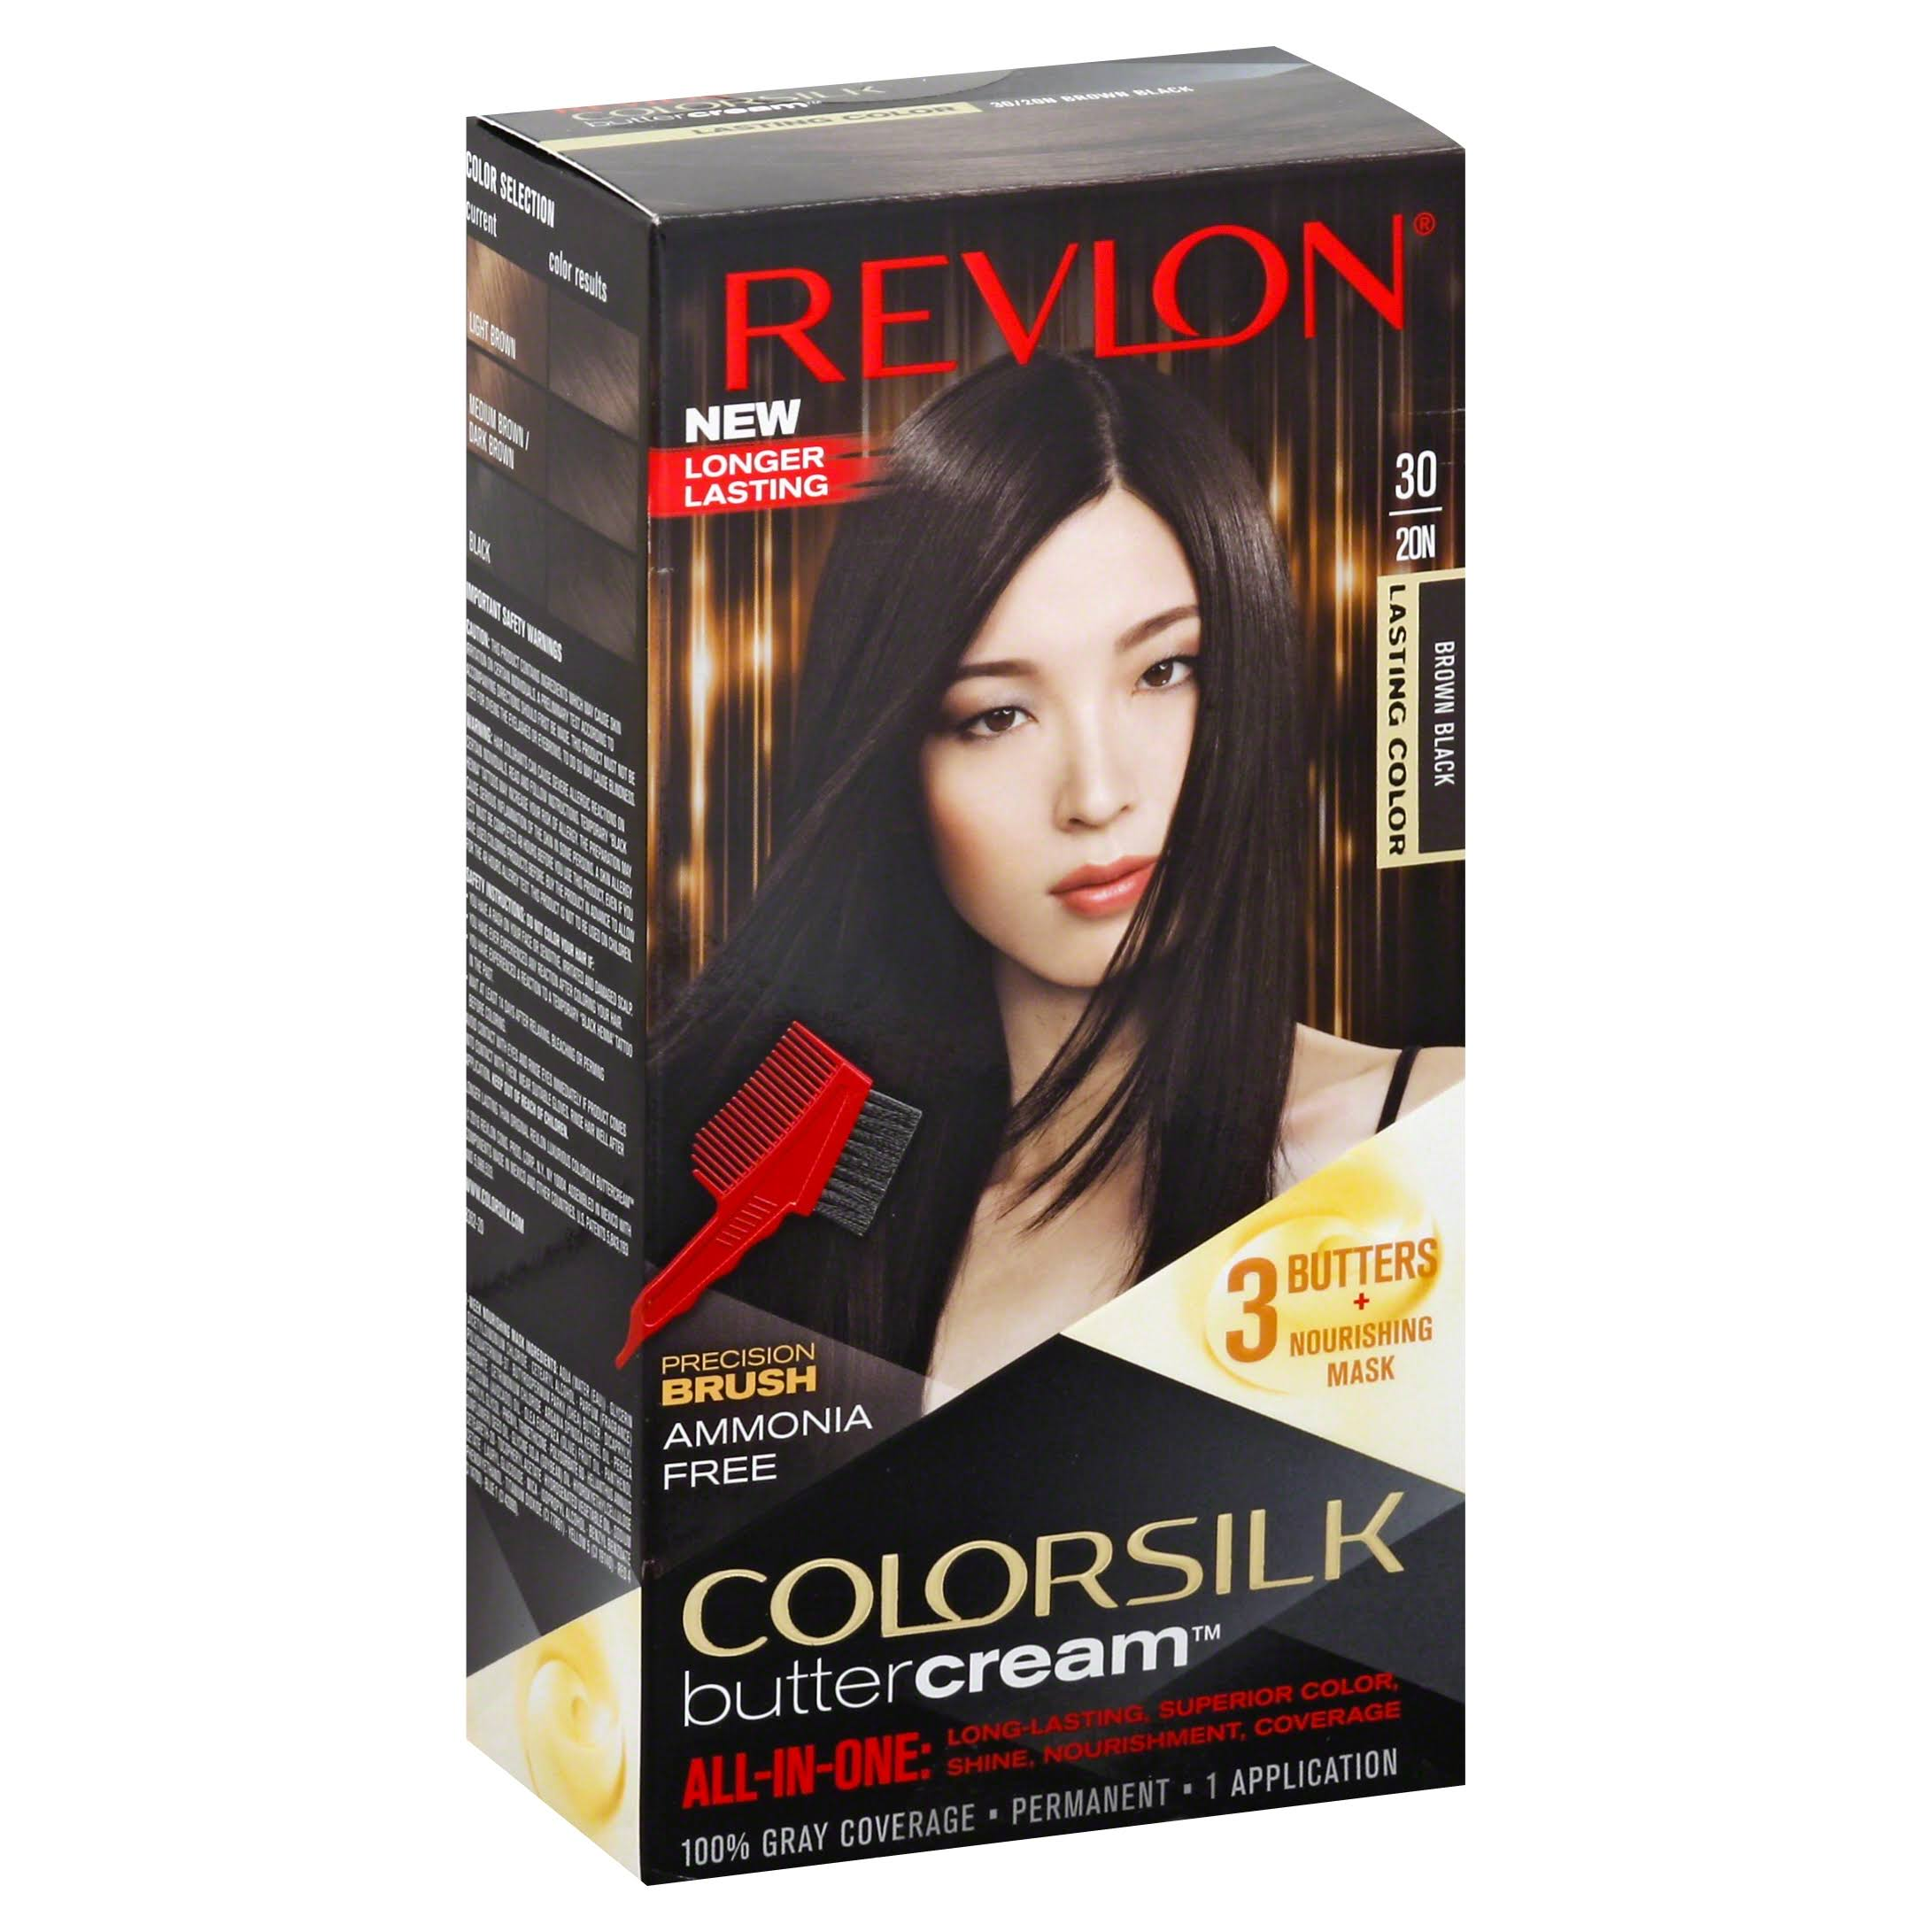 Revlon Colorsilk Buttercream Hair Color - 30 Brown Black